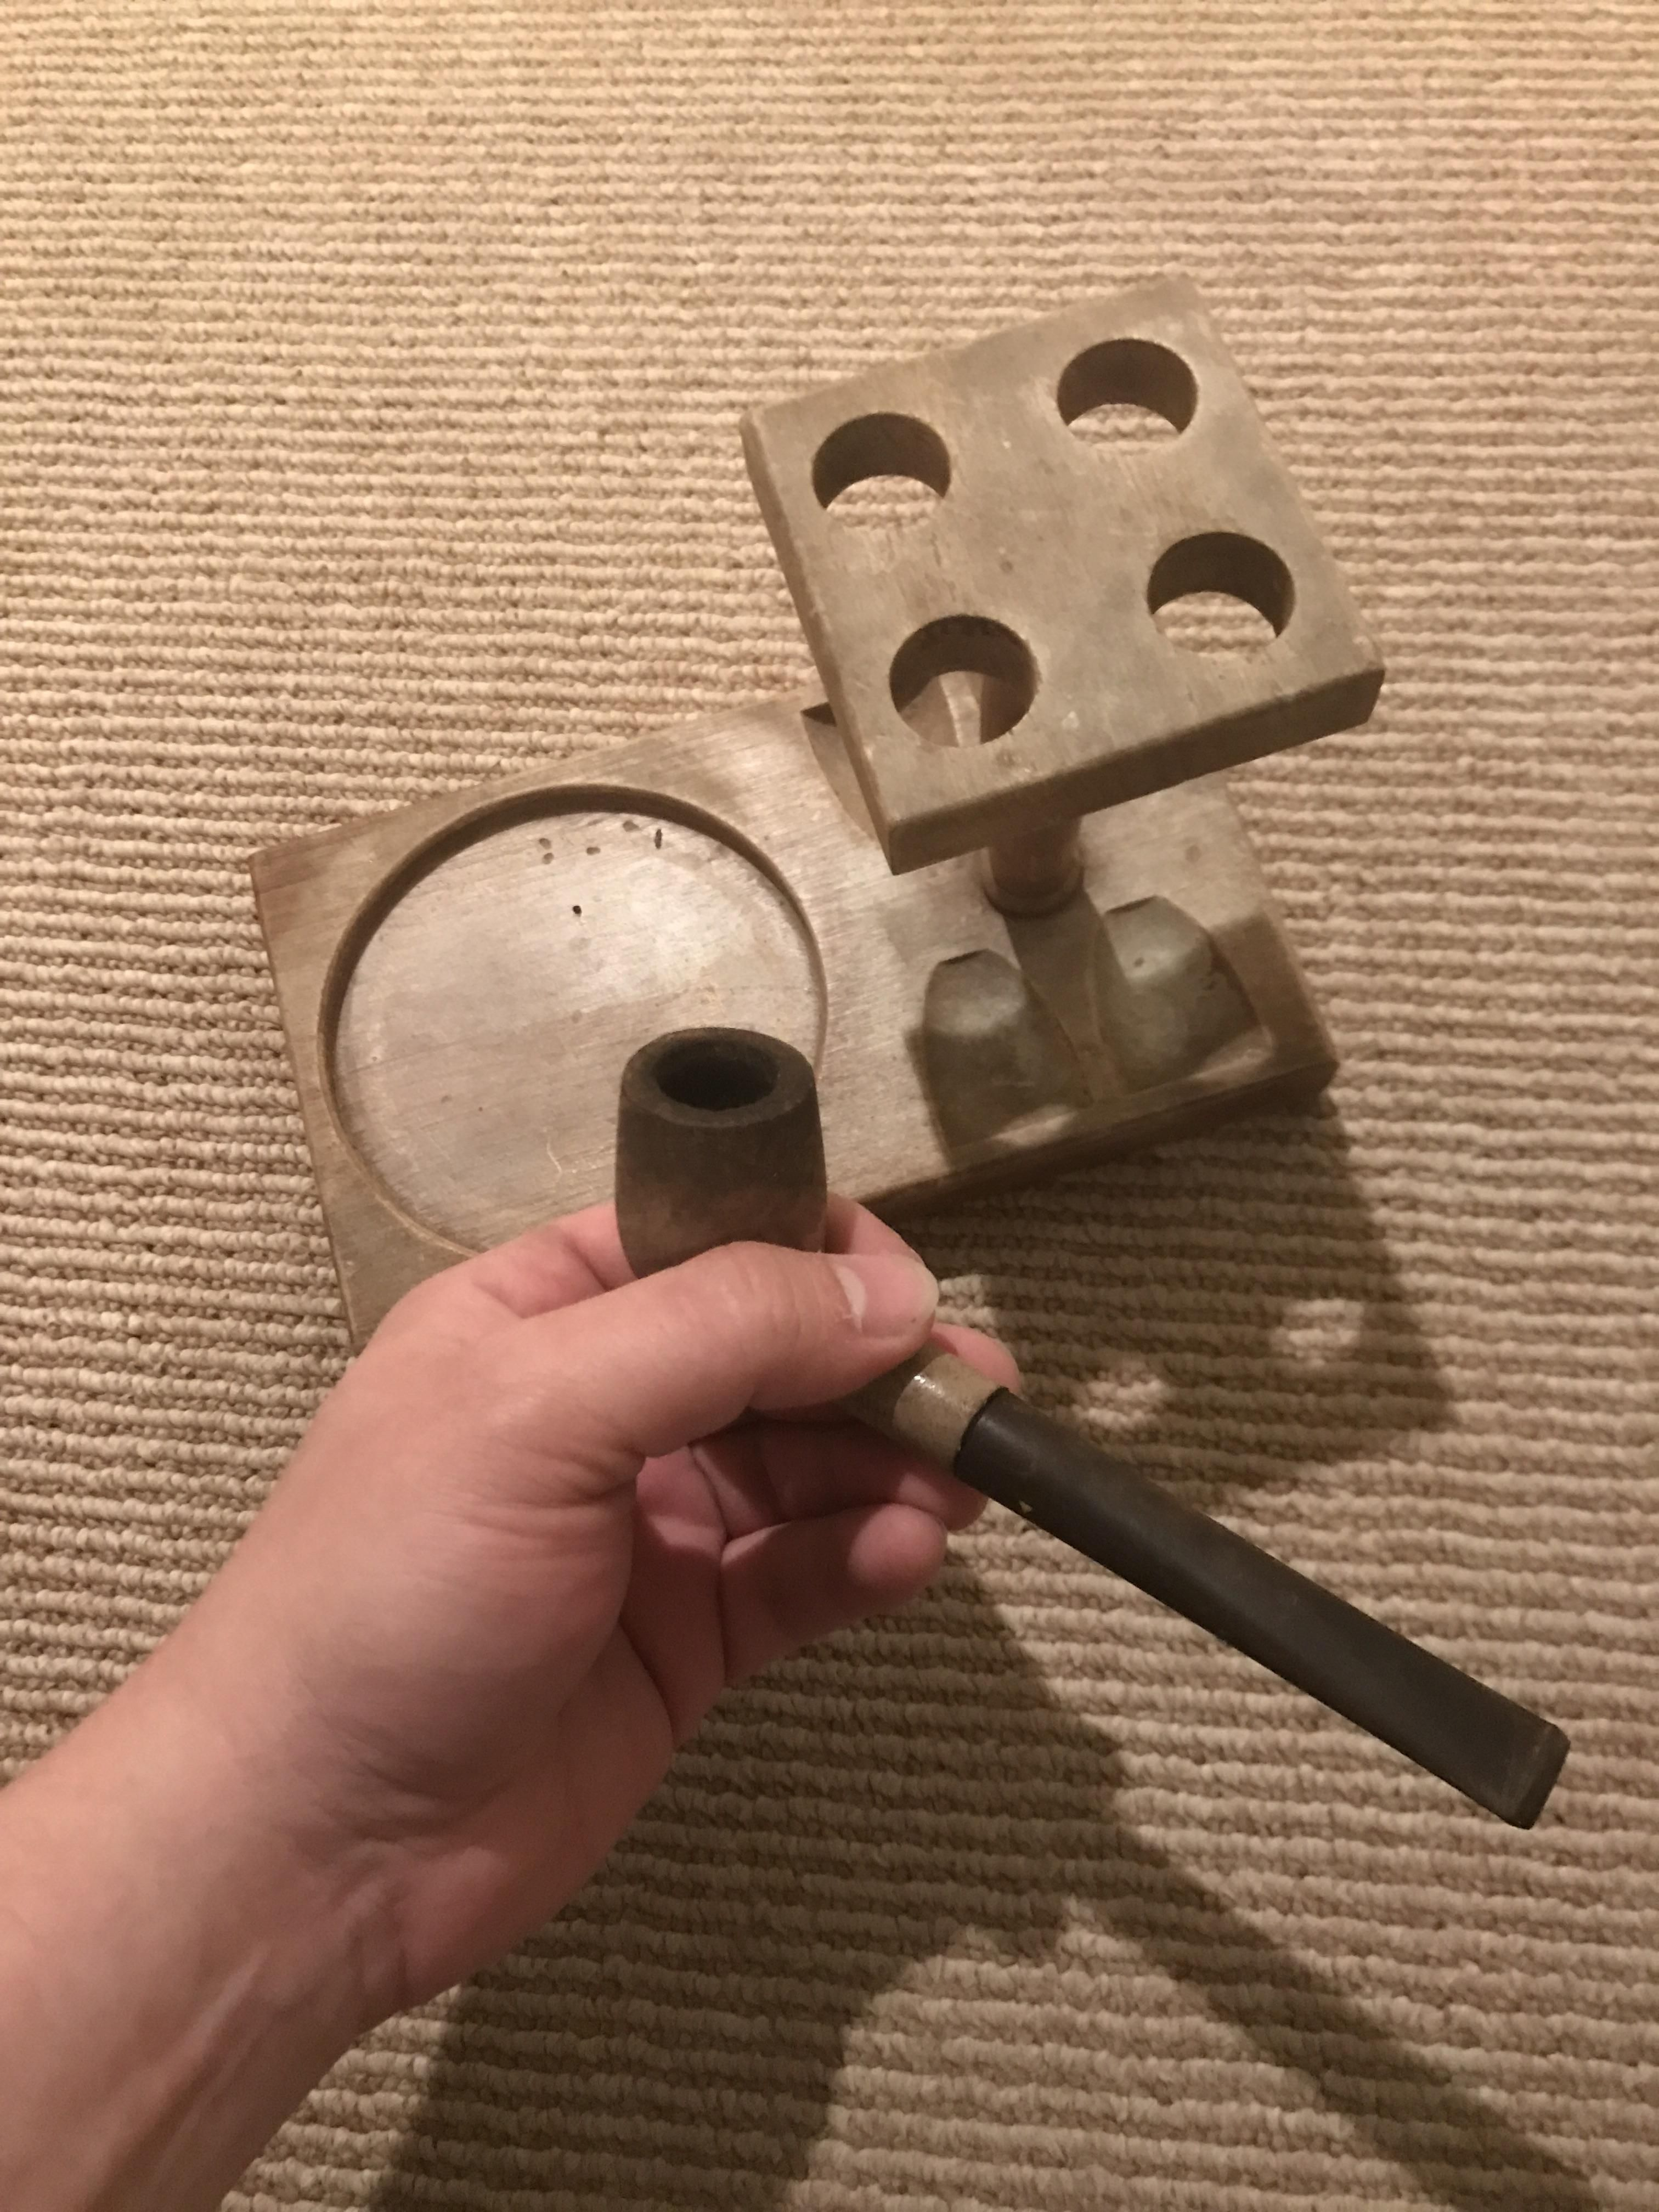 My great grandfather's pipe